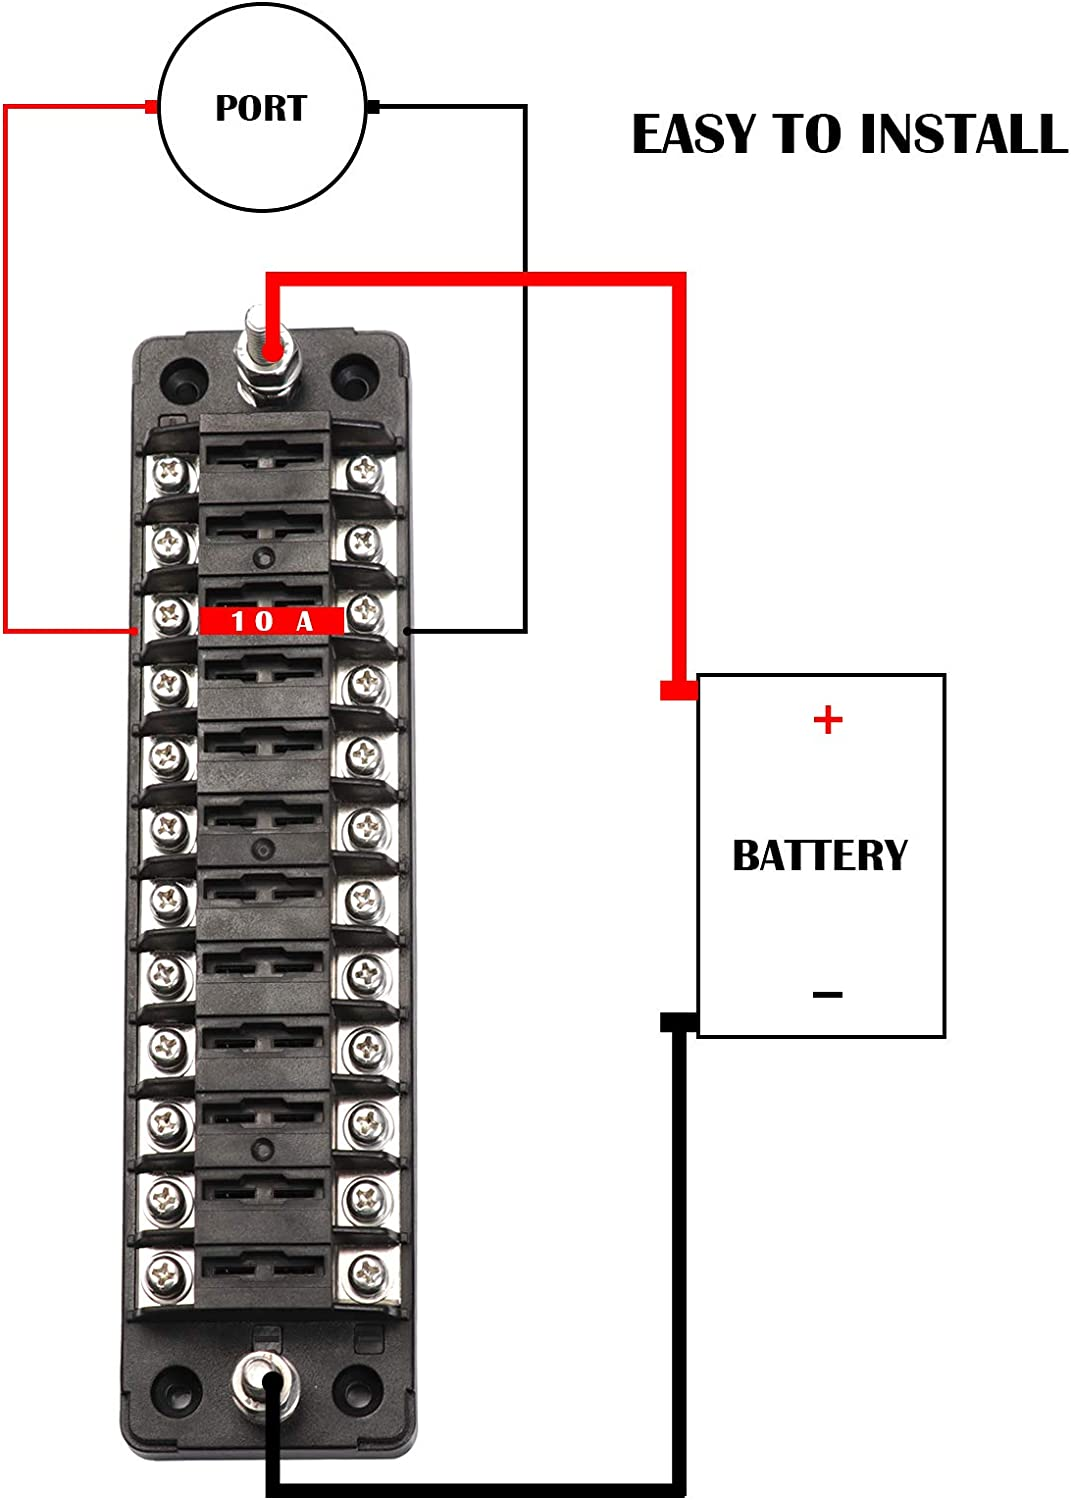 ATC//ATO Automotive with Negative Bus Fuse Panel for Car Marine Boat Truck. Elitezip 12-Way Car Fuse Box Fuse Block Holder with Cover 12-Way